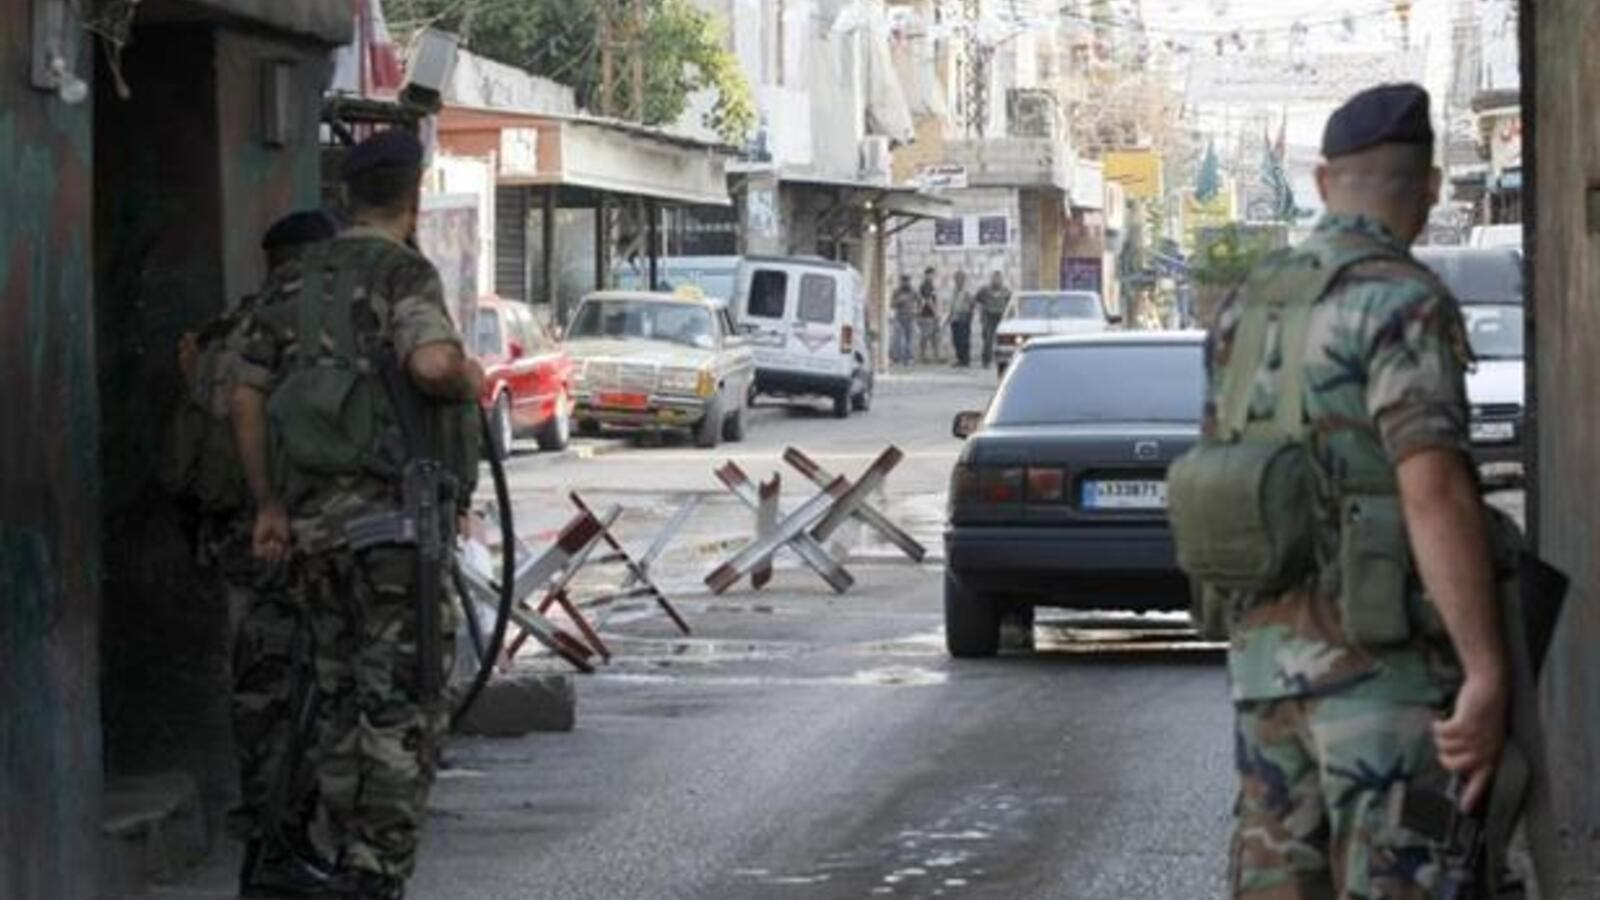 Members of Lebanese General Security observe passing cars at a checkpoint. (AFP/File)